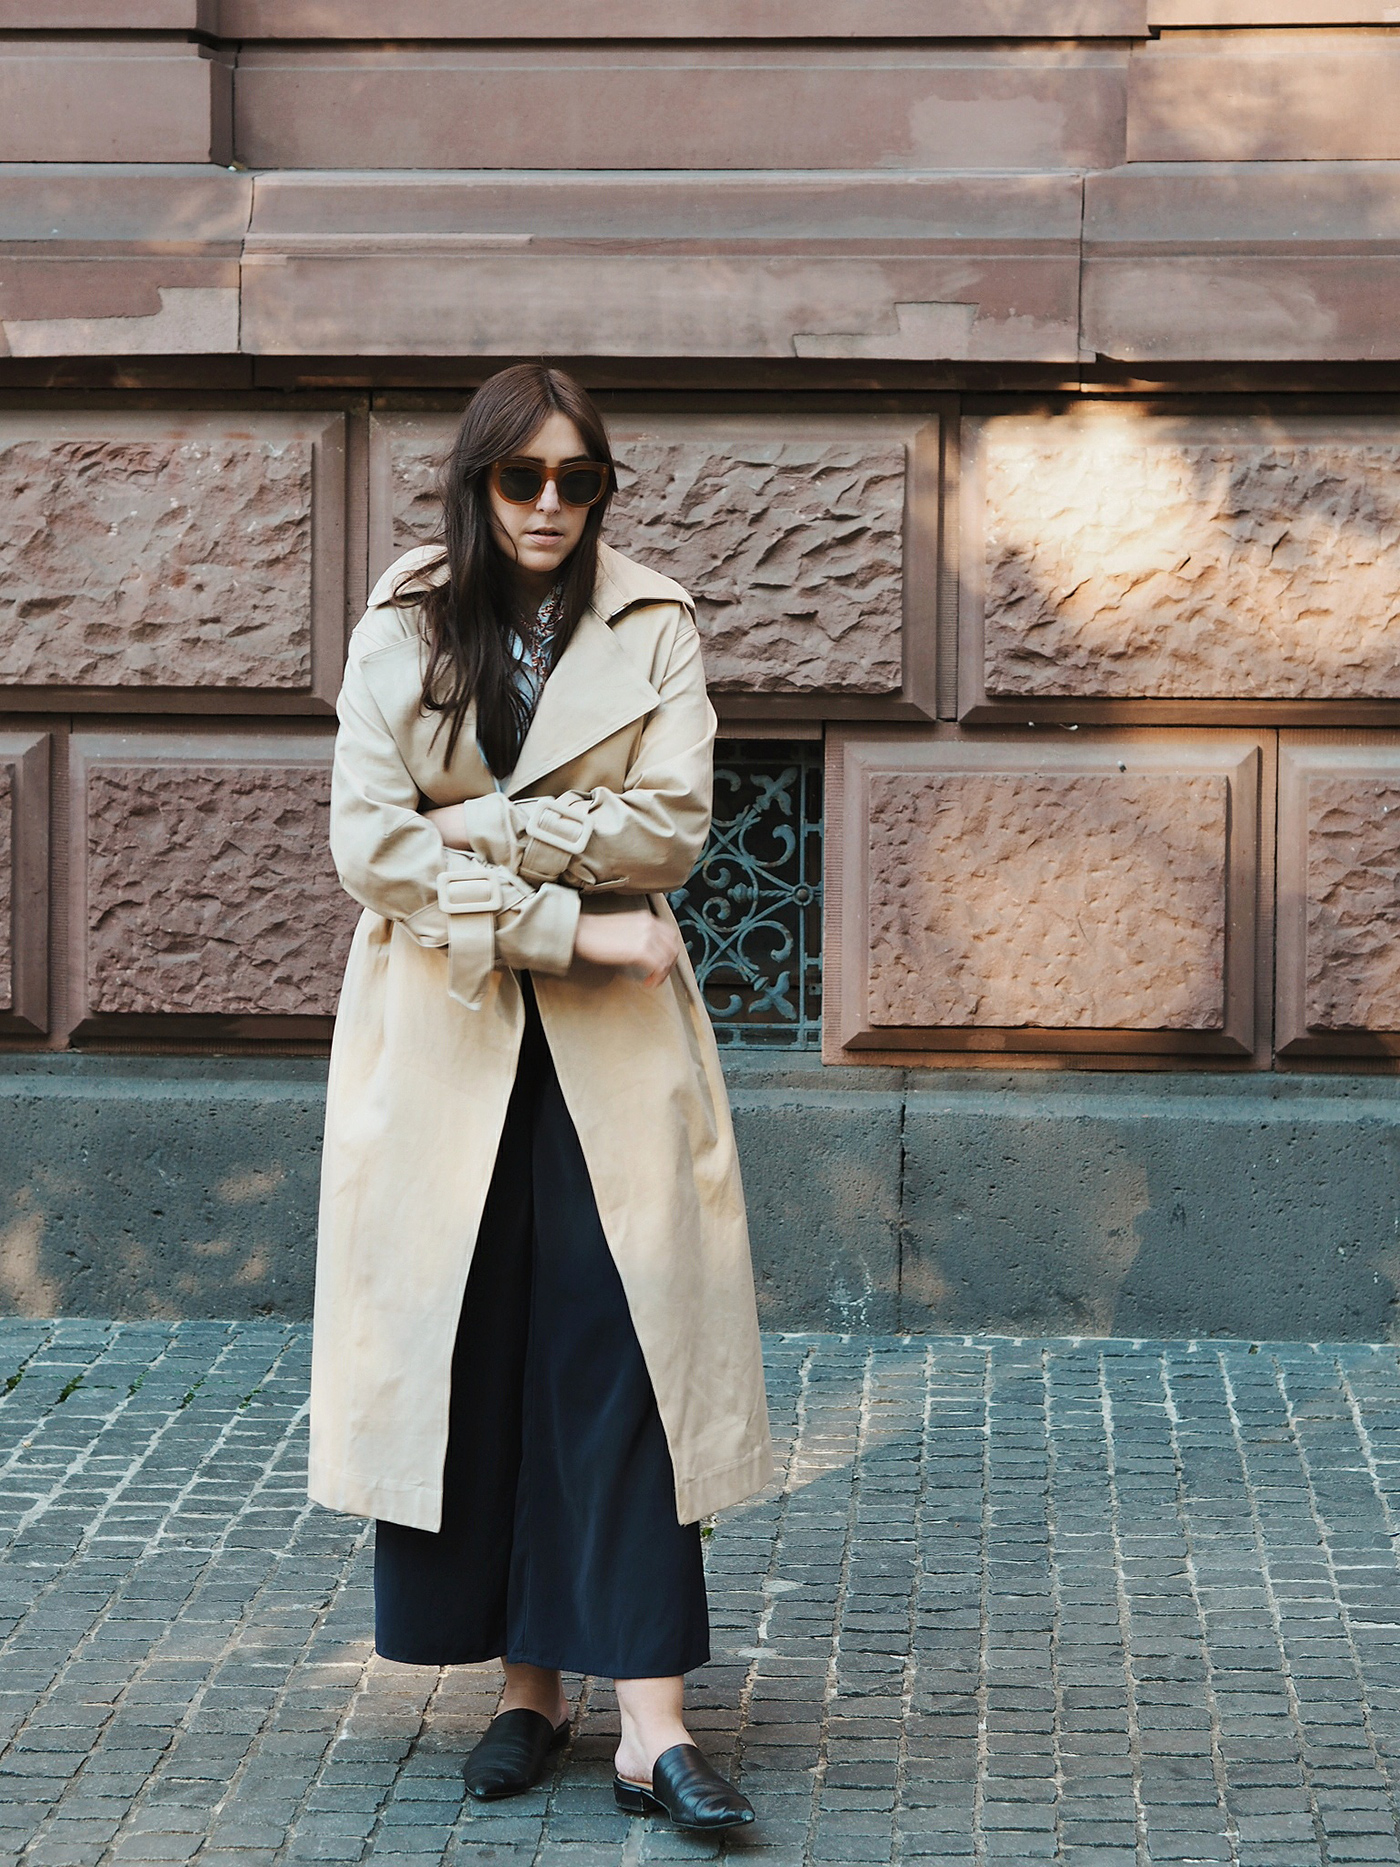 trench-coat-hm-trend-outfit-stine-goya-julia-carevic